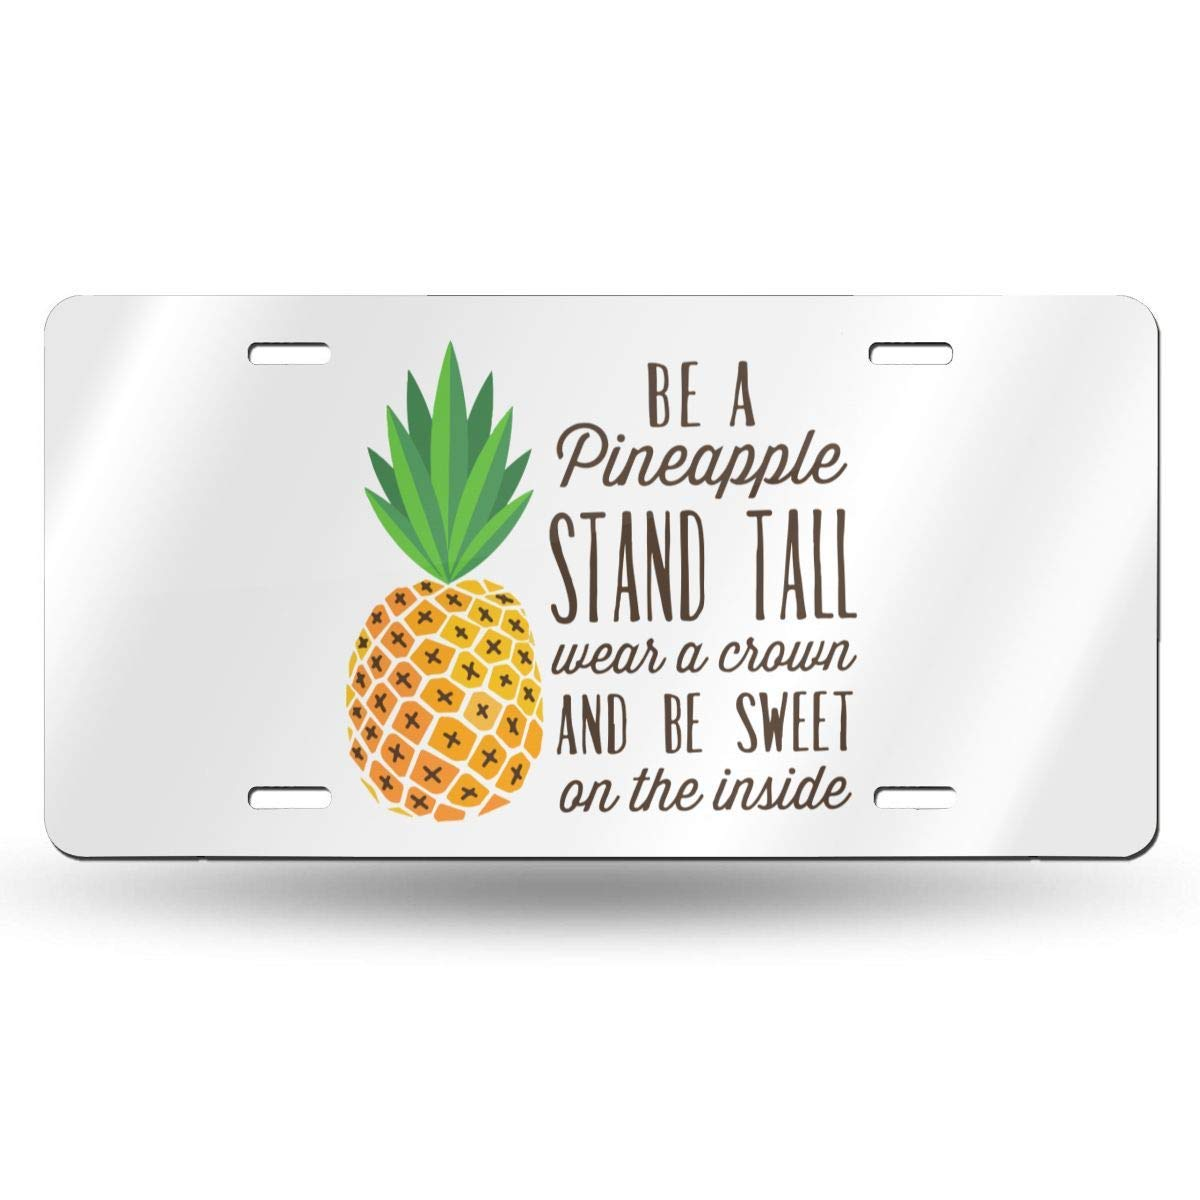 Anwei Be A Pineapple Stand Tall Wear A Crown and Be Sweet Novelty Car 6x12 Aluminum Front Vehicle License Plate Frame Vanity Tag Sign